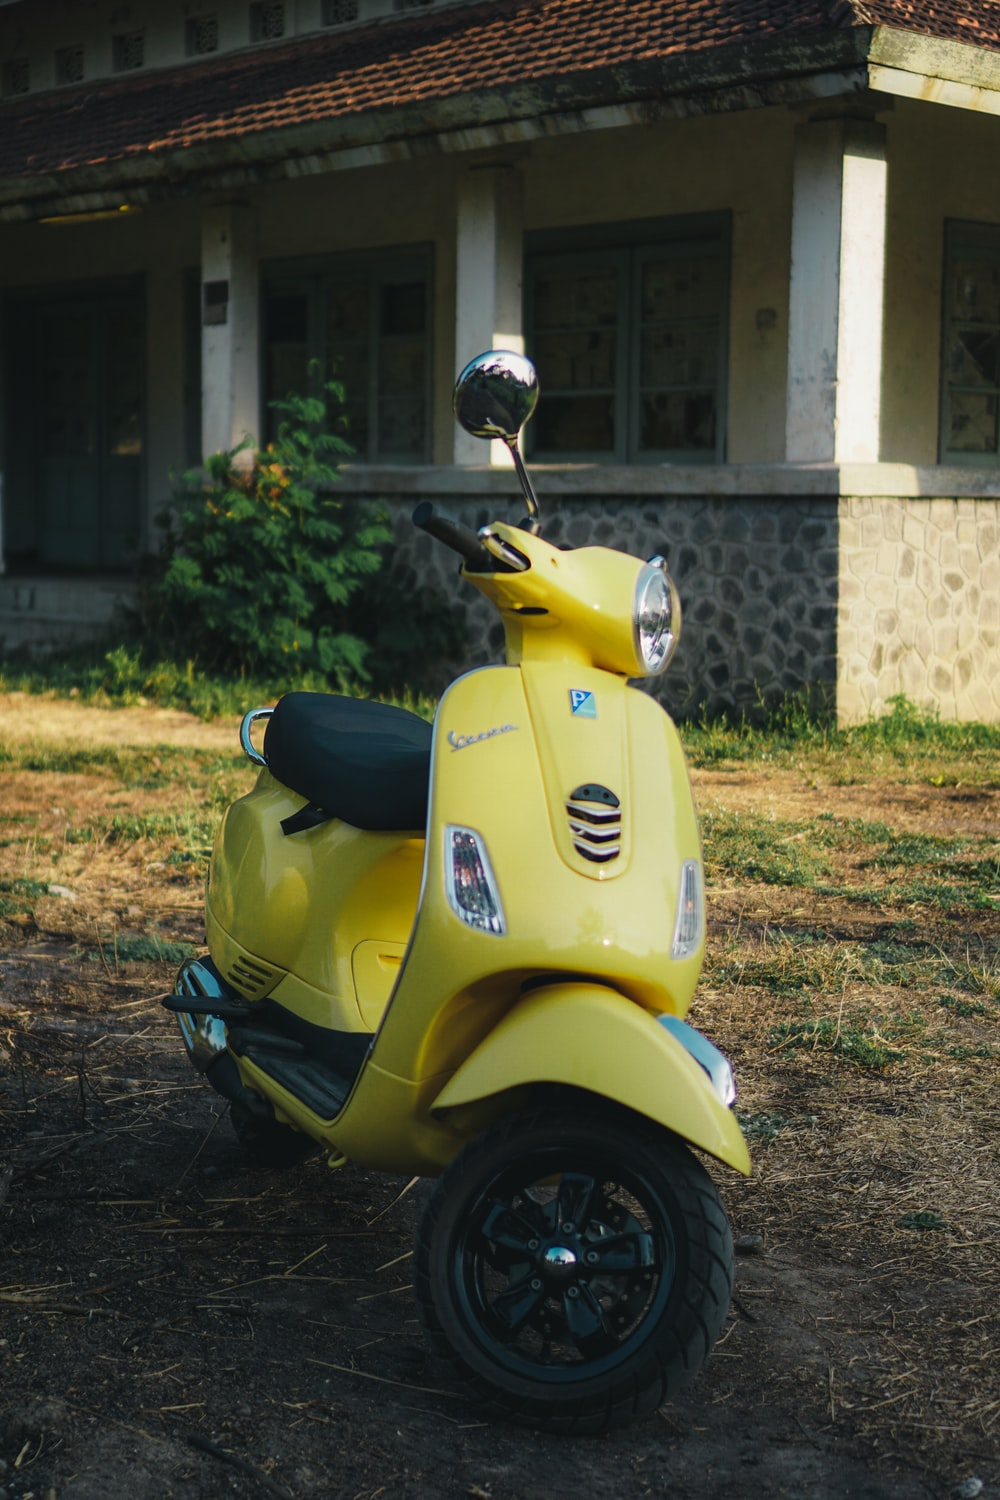 yellow motor scooter during daytime